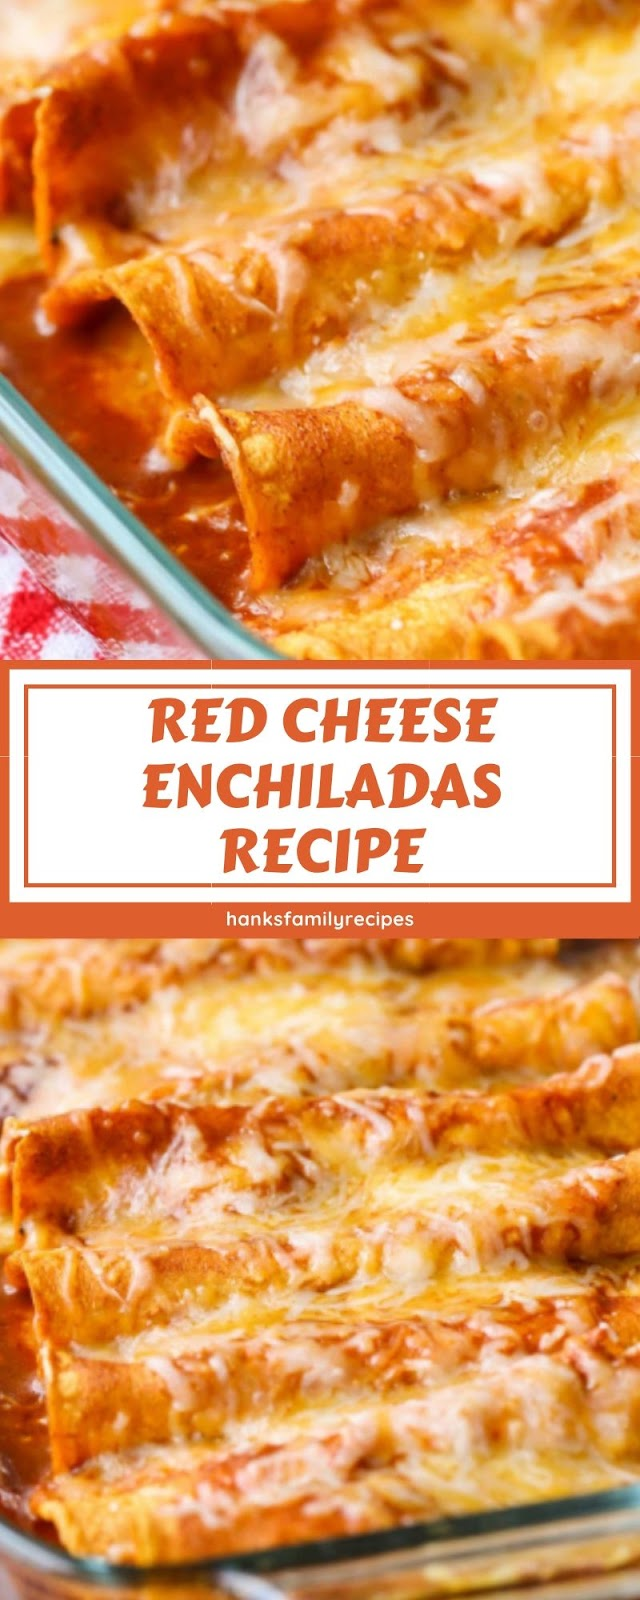 RED CHEESE ENCHILADAS RECIPE